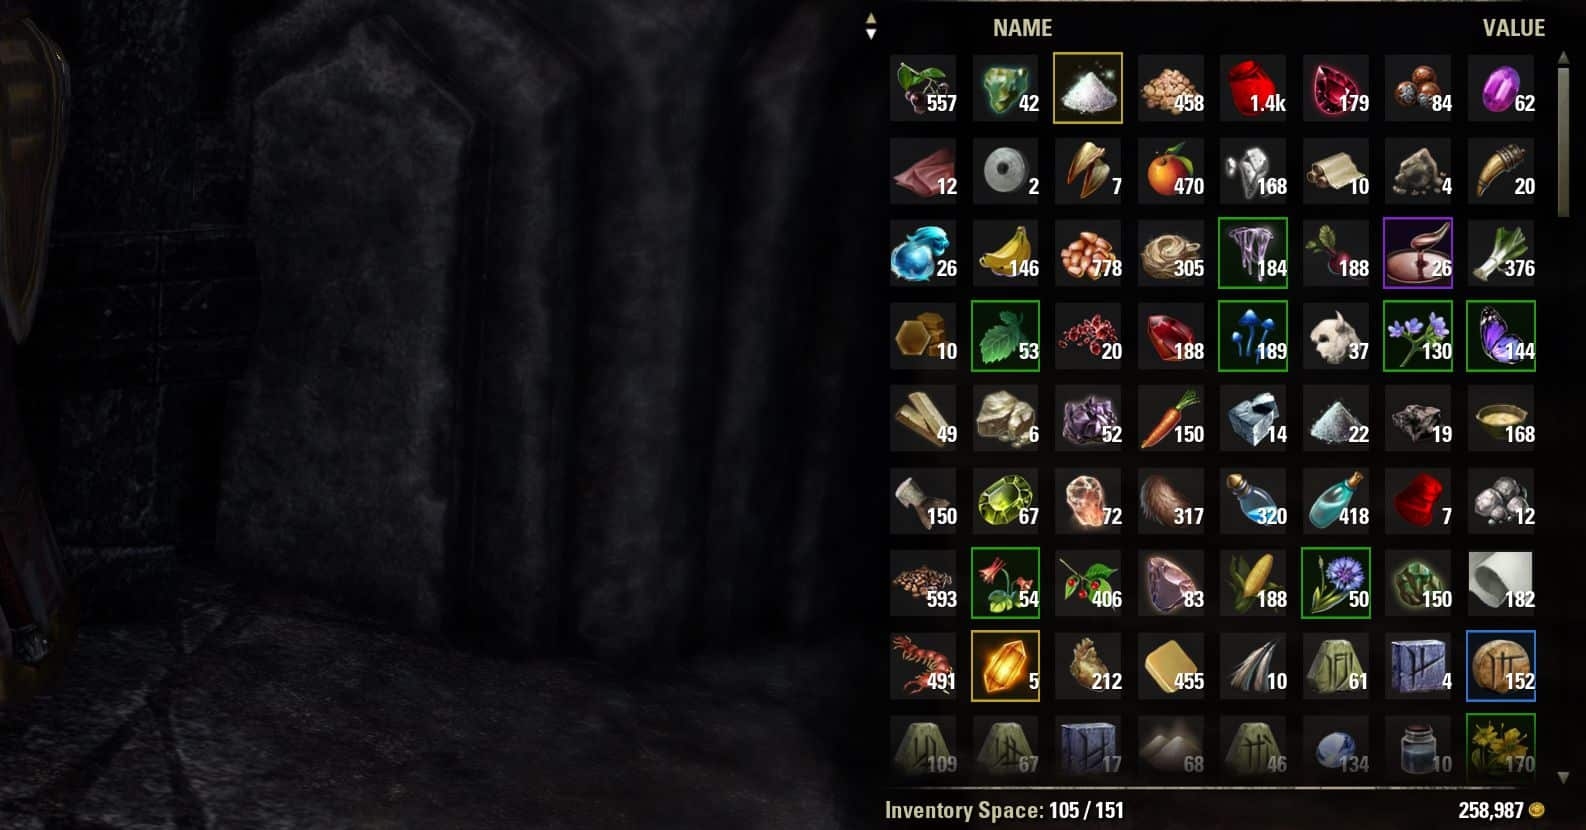 Inventory Grid View by Randactyl & ingeniousclown, The Elder Scrolls Online Addon (image by @serpentaa)